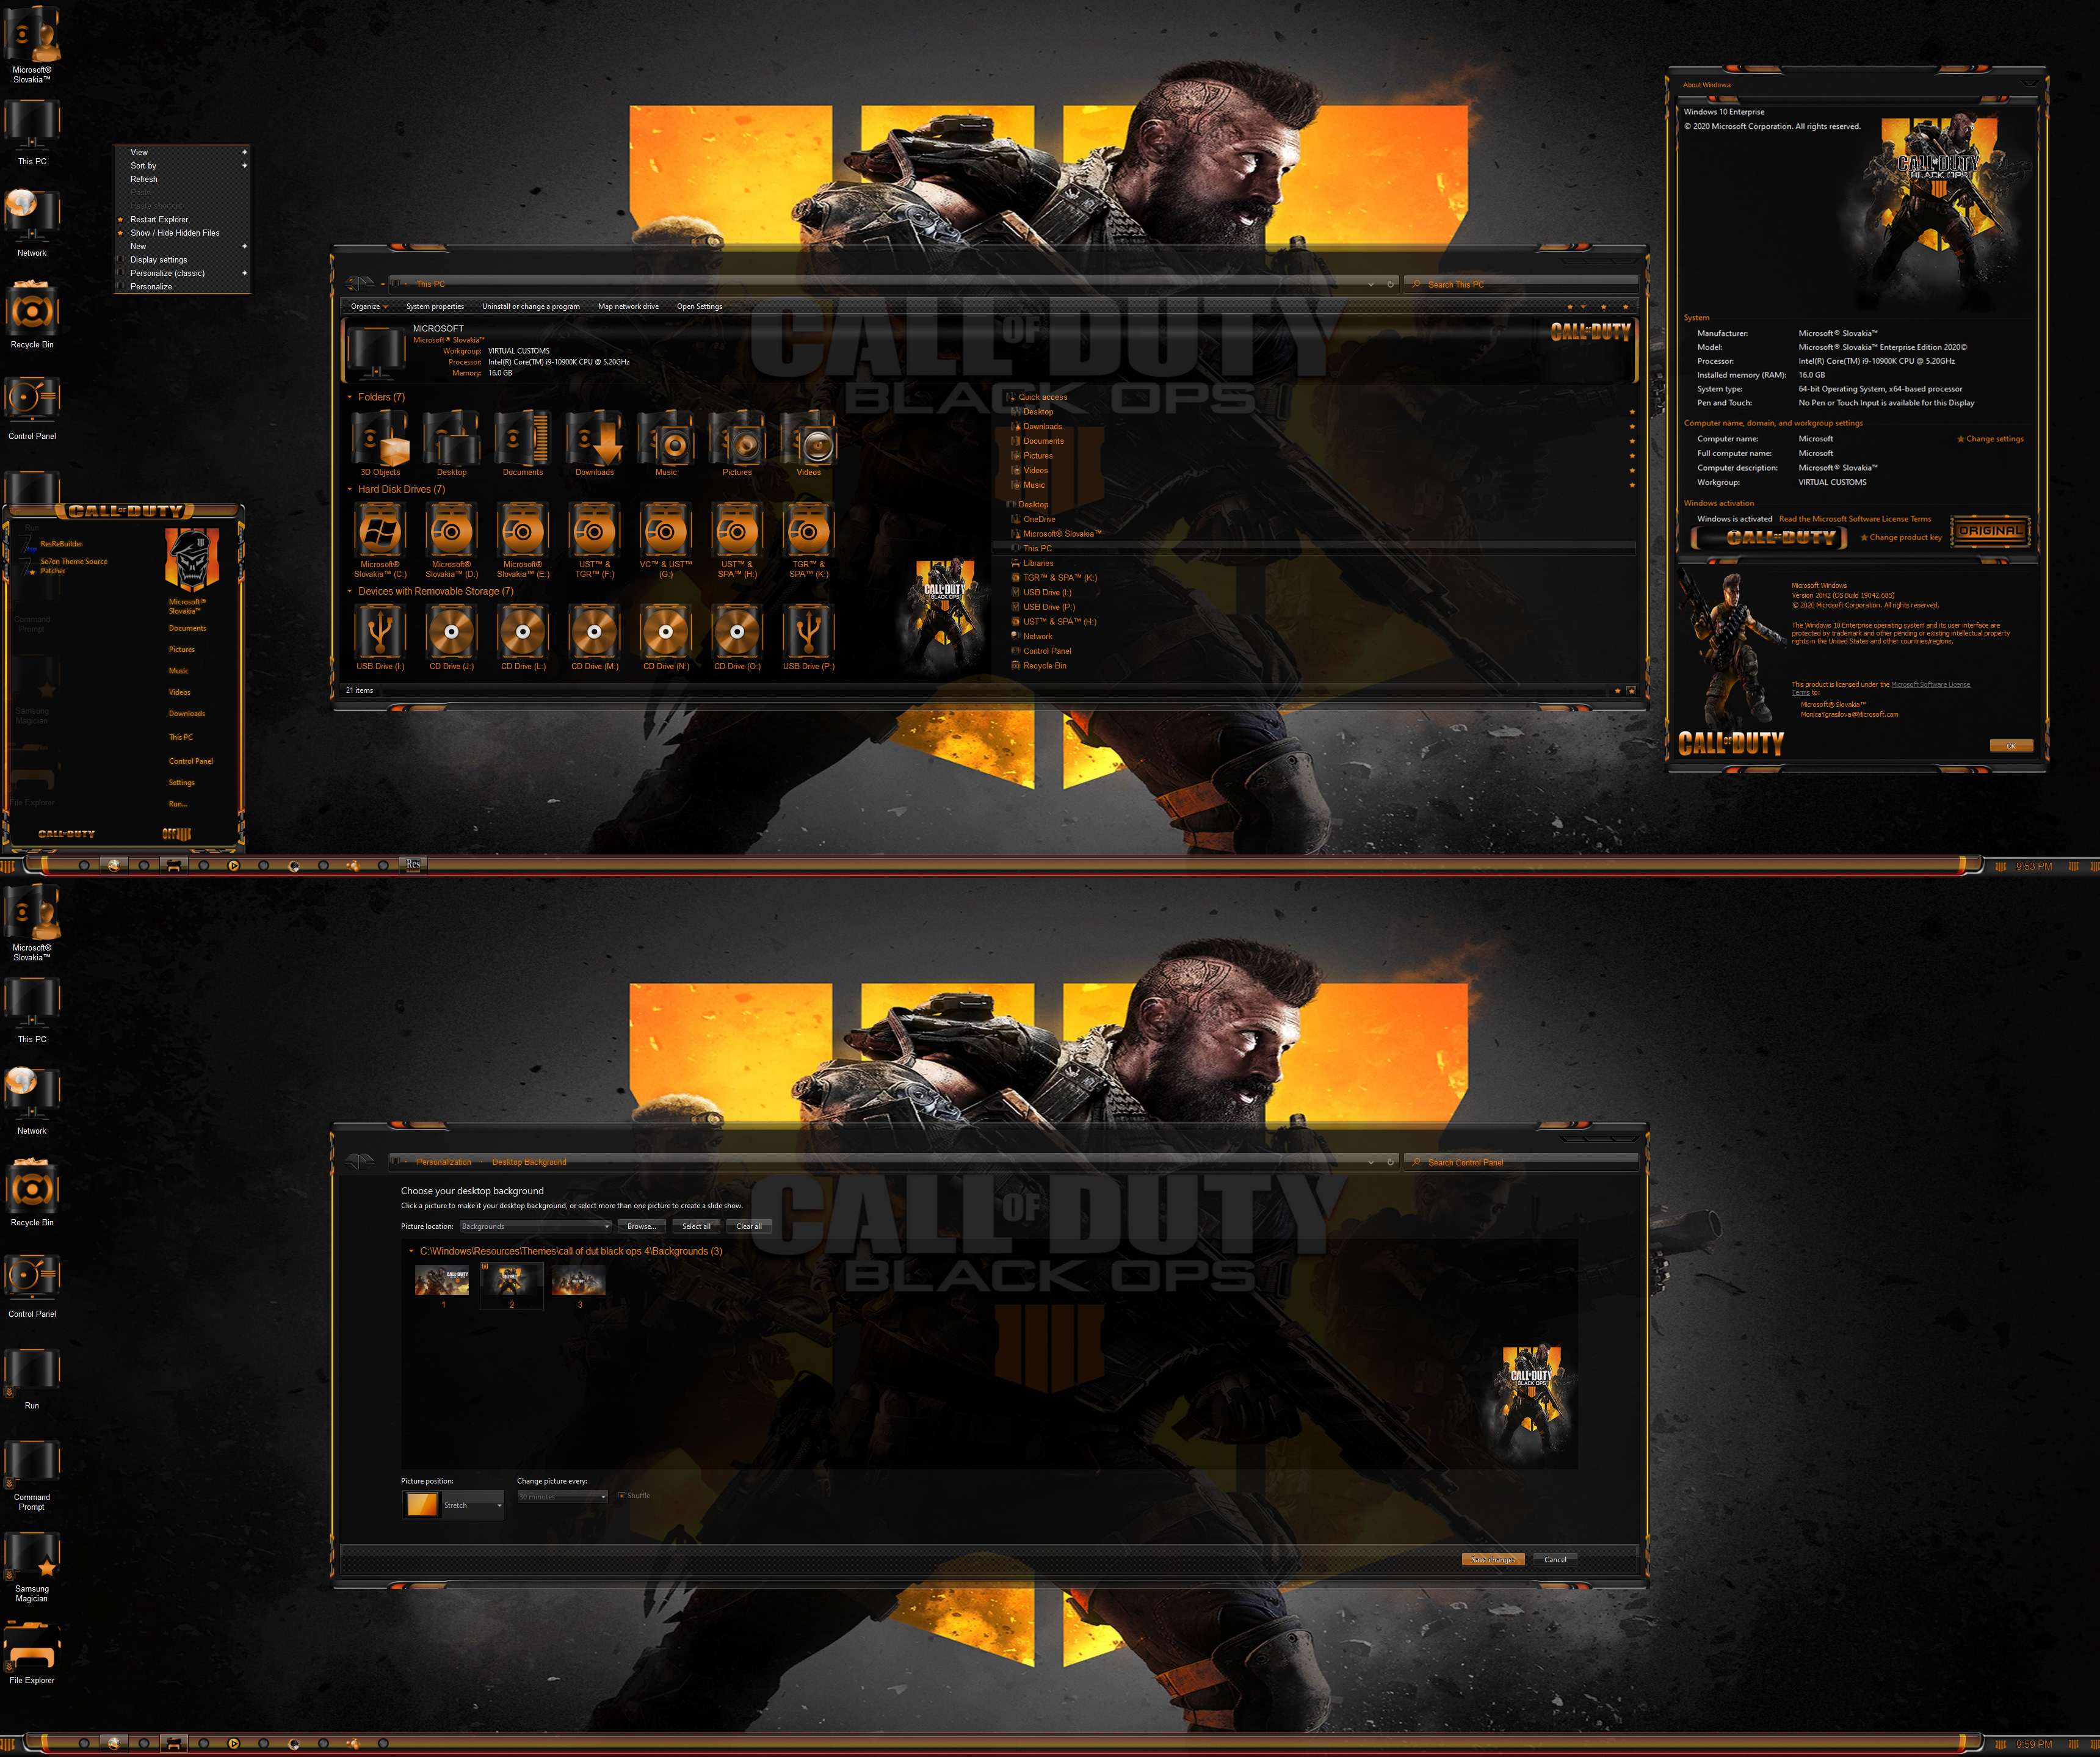 Call of Duty Black Ops 4 for Windows 10 Build 1903-21h2